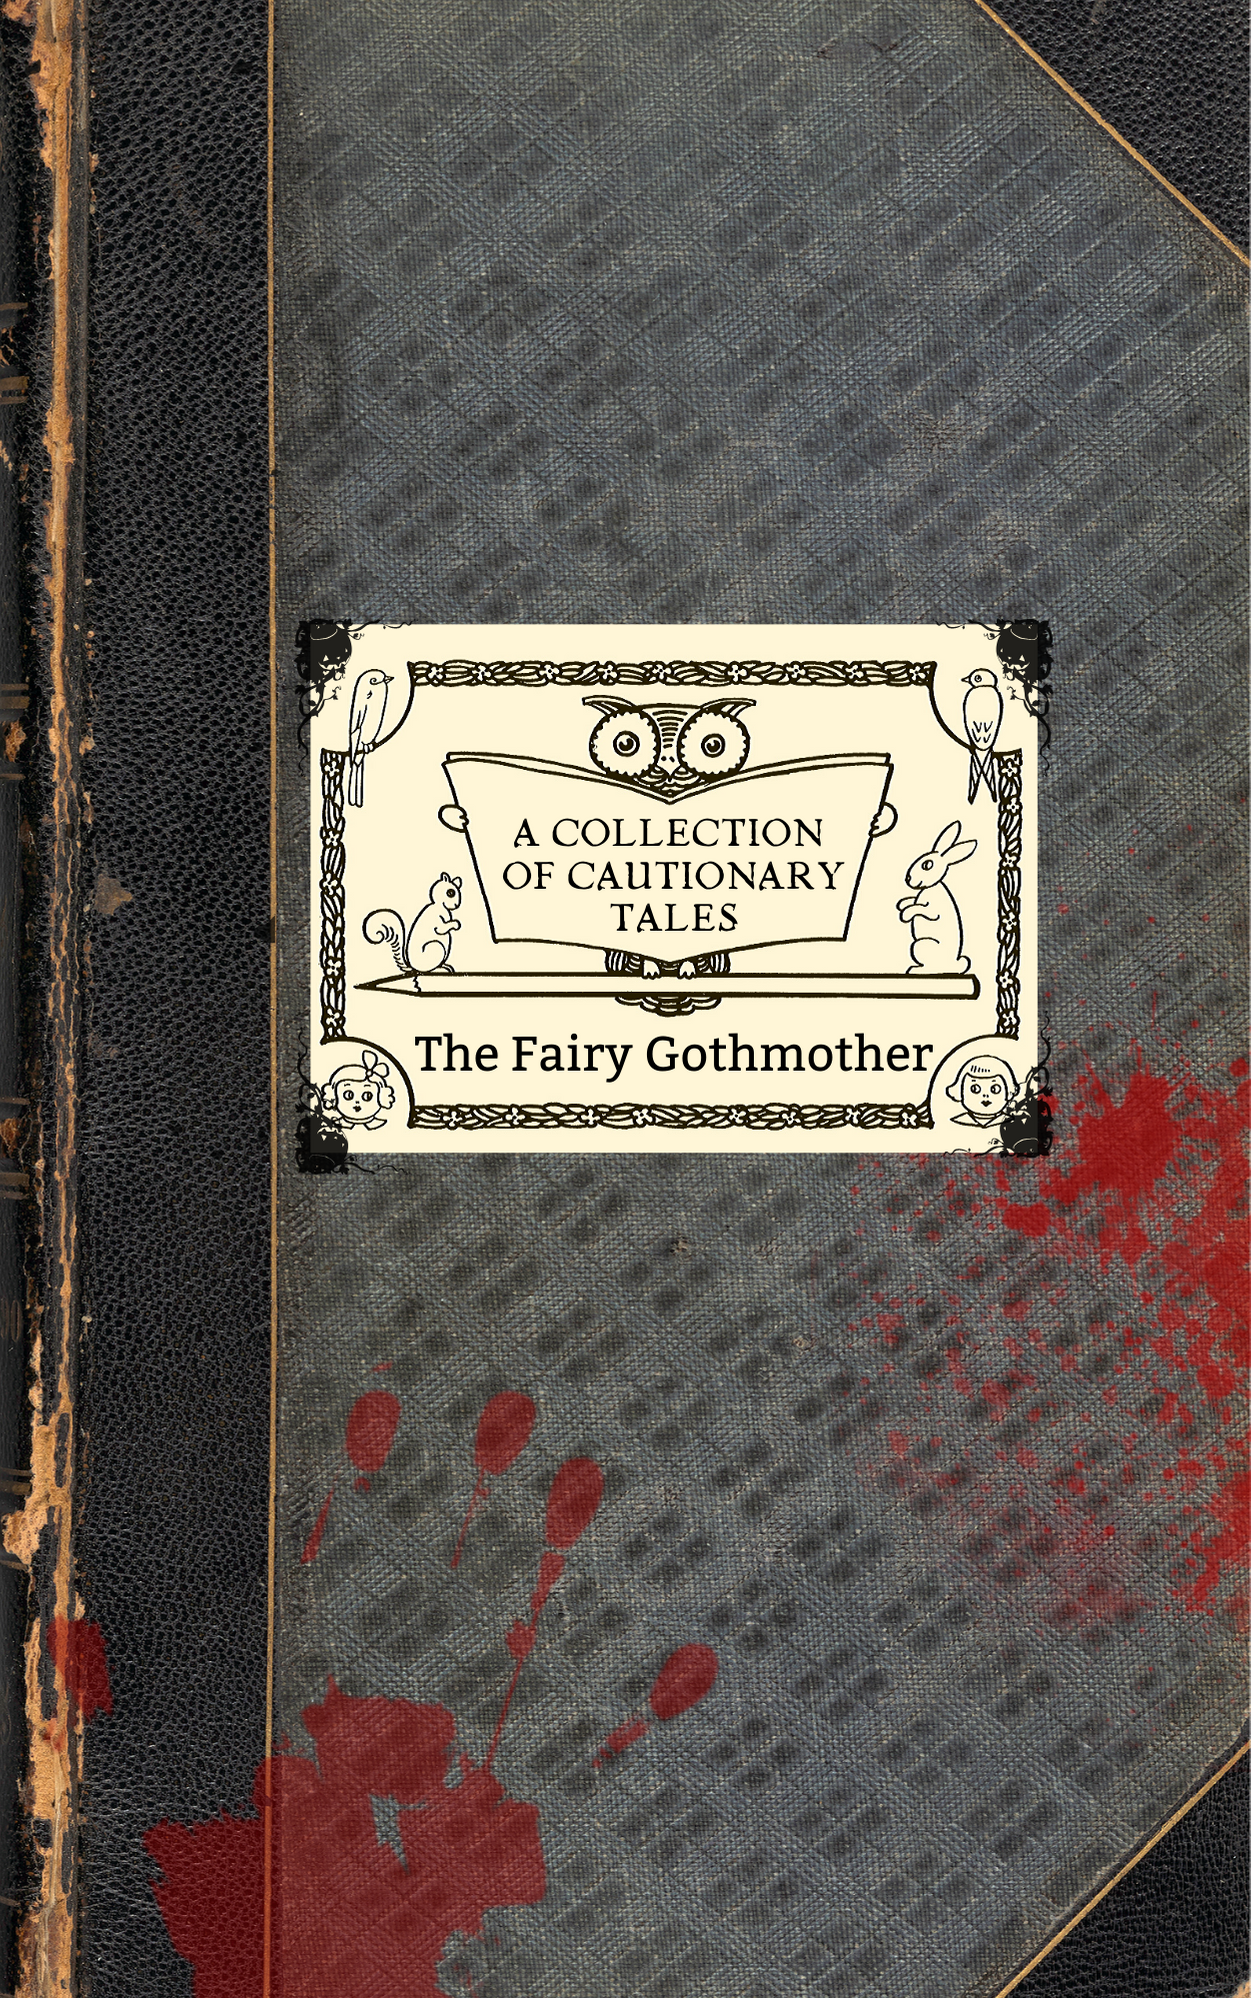 The Fairy Gothmother's Collection of Cautionary Tales by Gig Harbor writer, Jennifer Preston Chushco